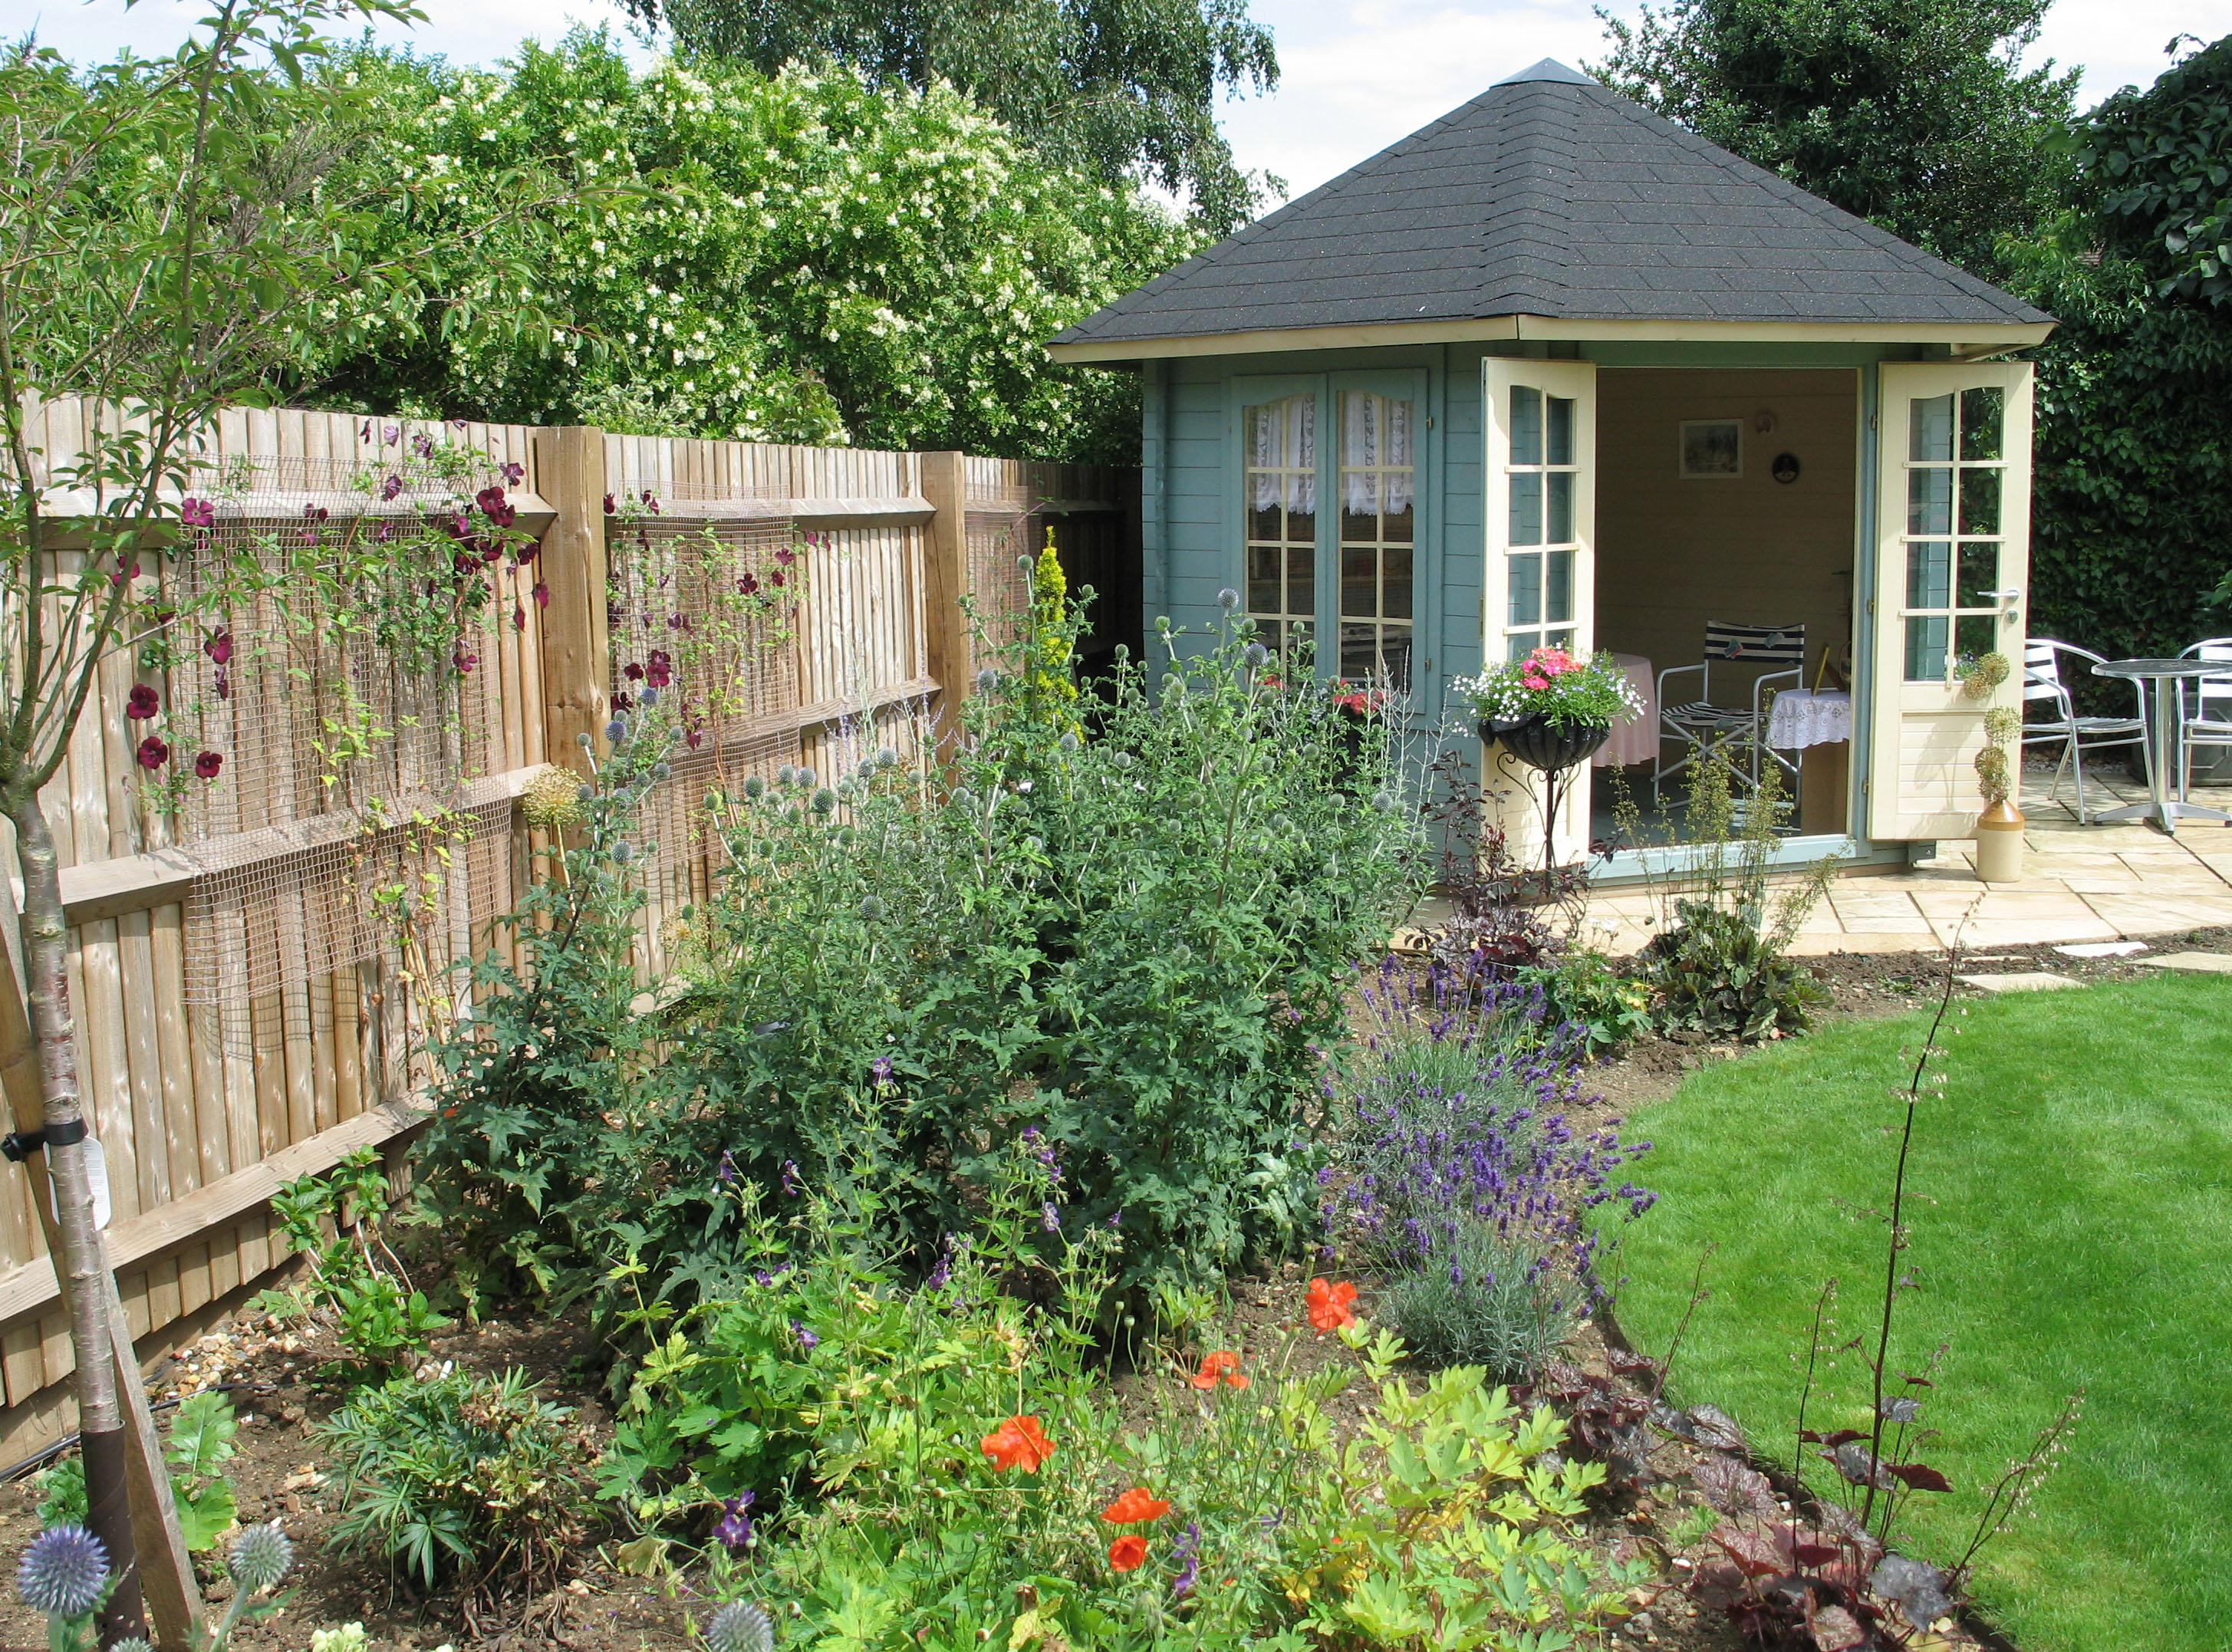 Border with summer house karen tizzard garden design for In house garden design